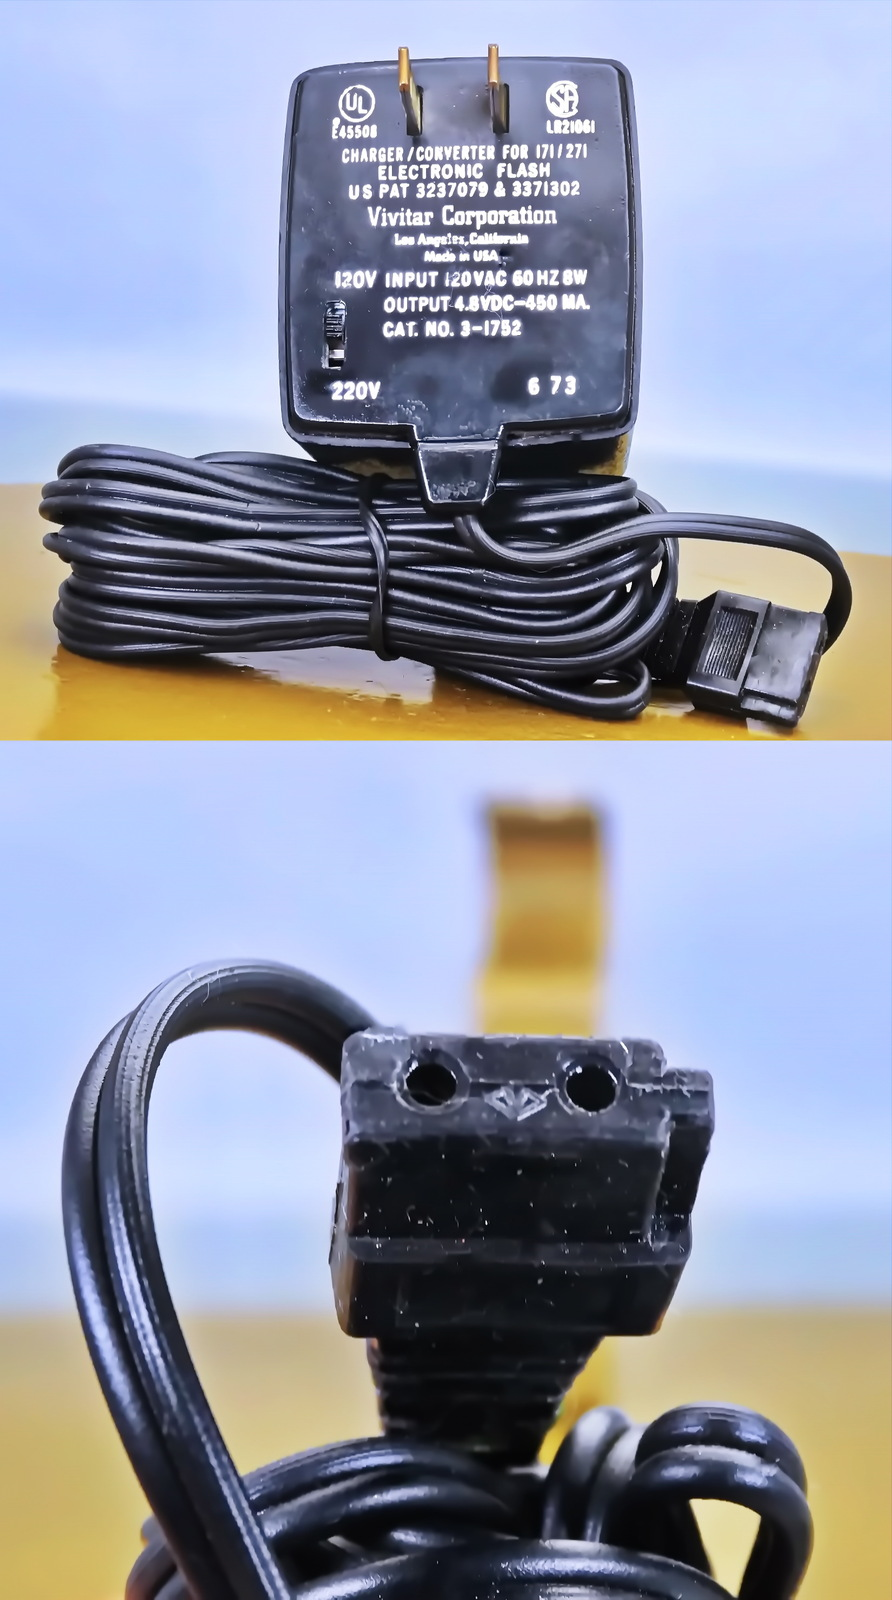 Vivitar Quick Charger Converter 110/220 Volts use for Flashes 171 & 271  - $35.88